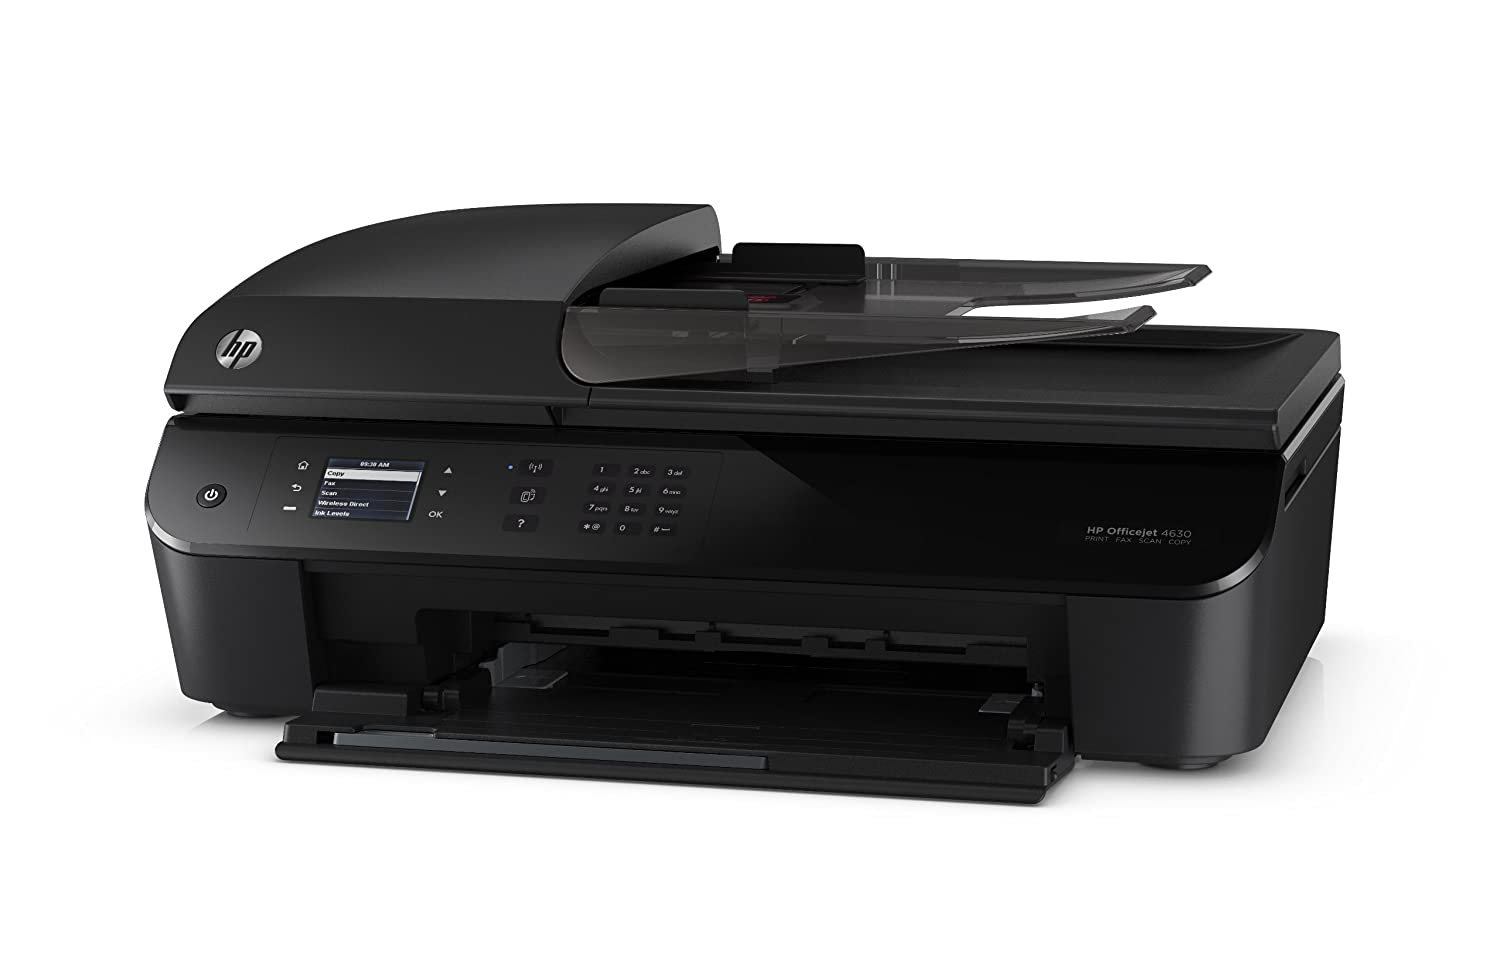 DRIVERS OFFICEJET 4630